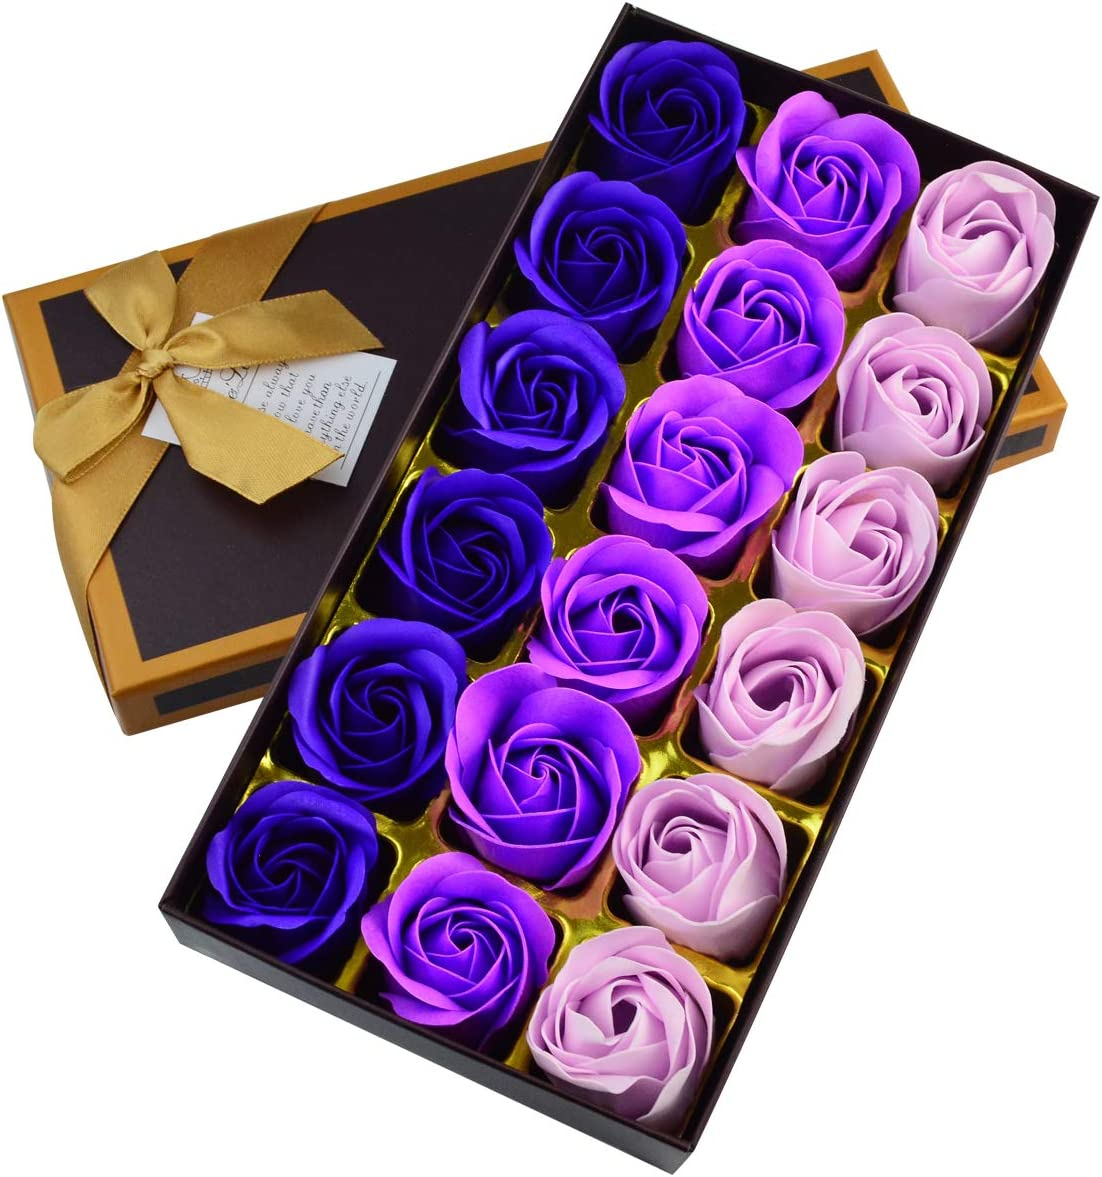 Details about  /Day Gifts Artificial Flower Soap Cartoon Bouquet Scented Bath Soap Rose